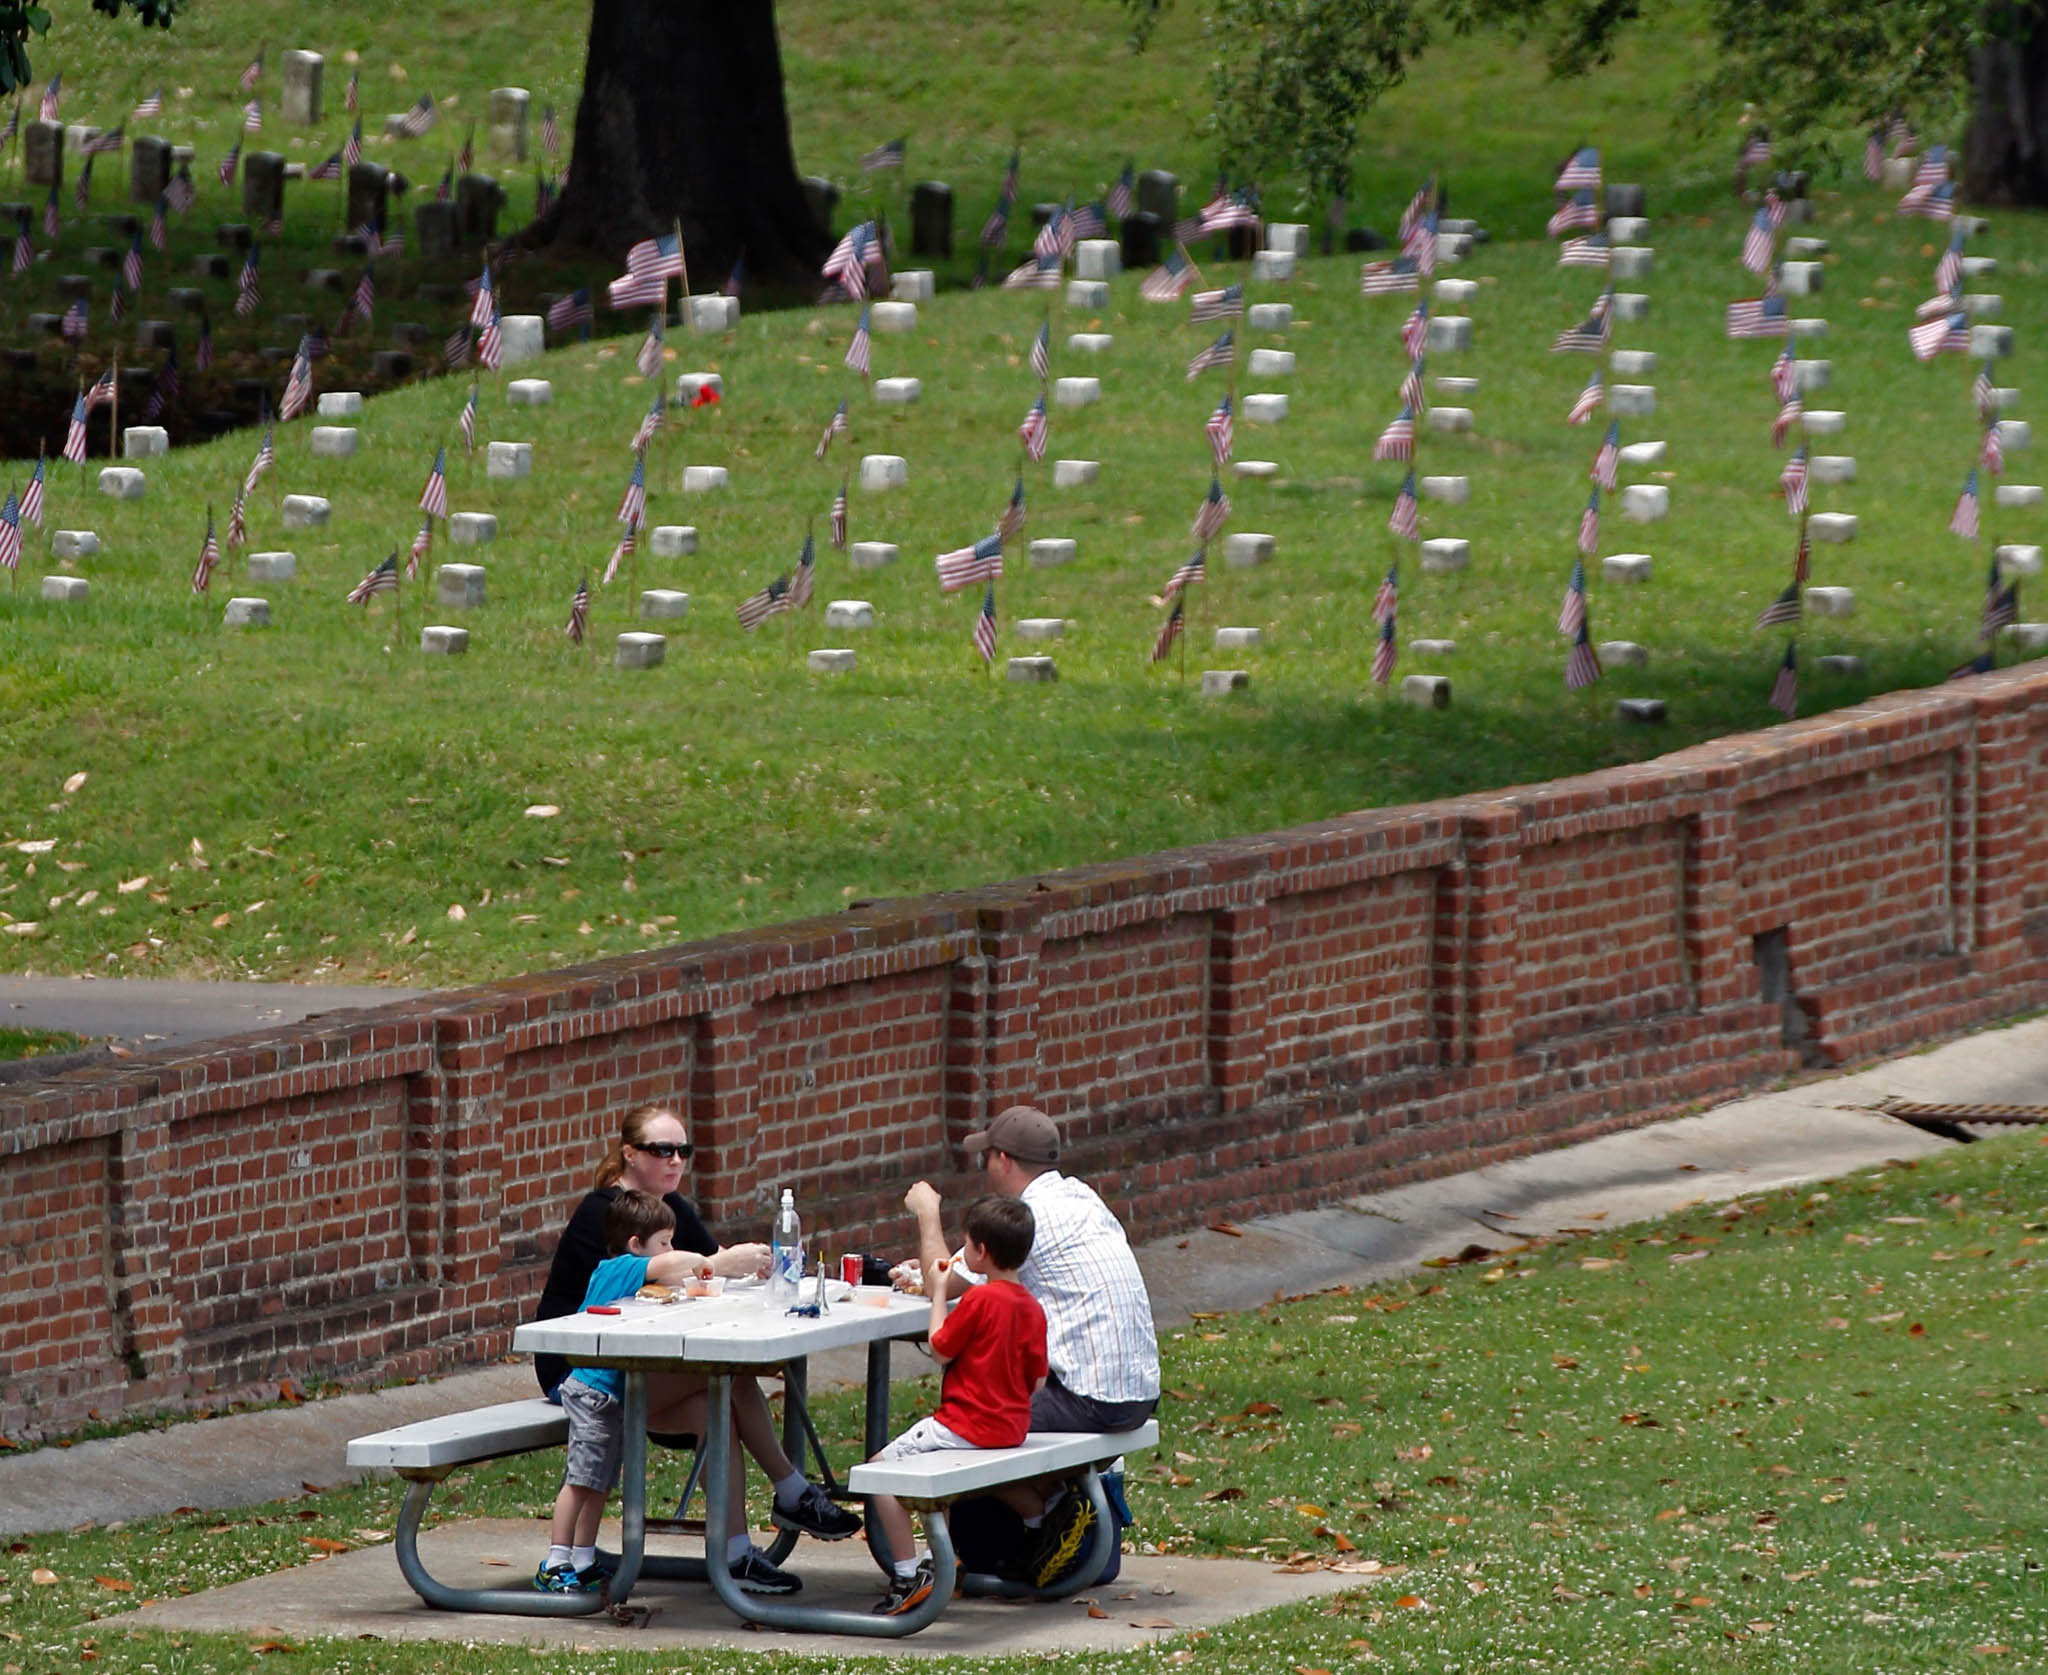 Family at picnic table near cemetery (© Rogelio V. Solis/AP Images)